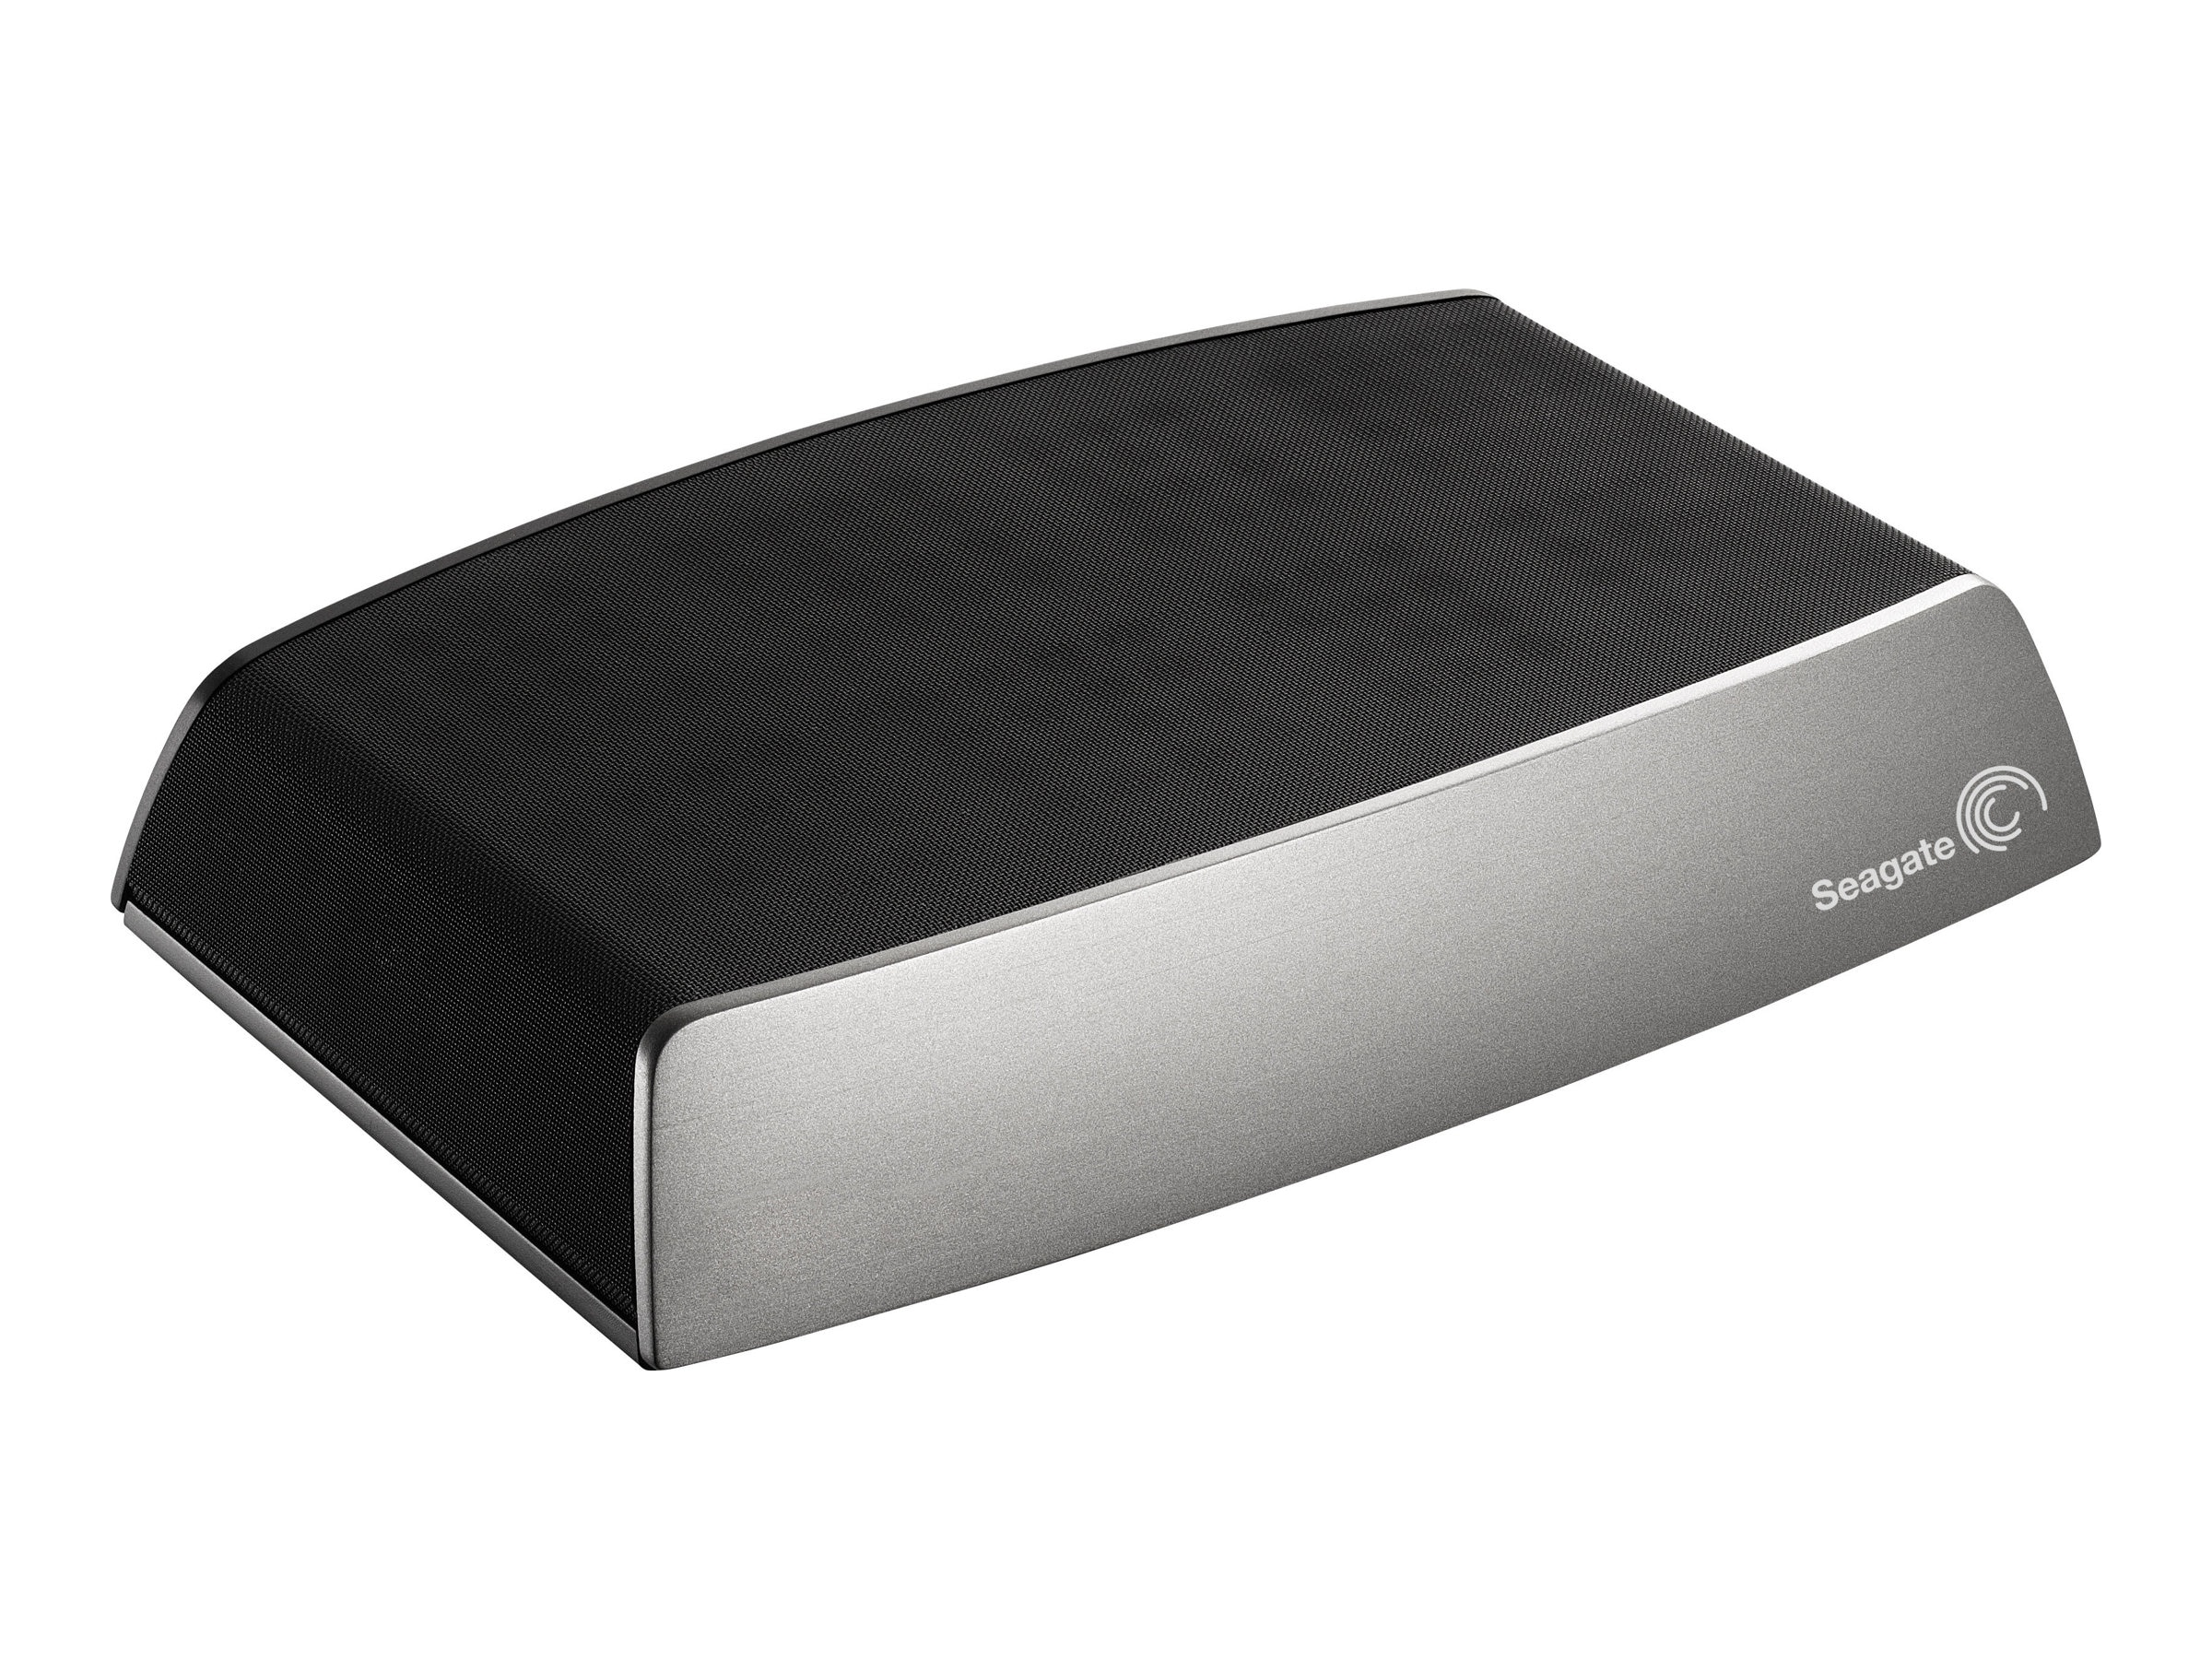 Seagate 4TB Central Shared Storage, STCG4000100, 15471016, Network Attached Storage